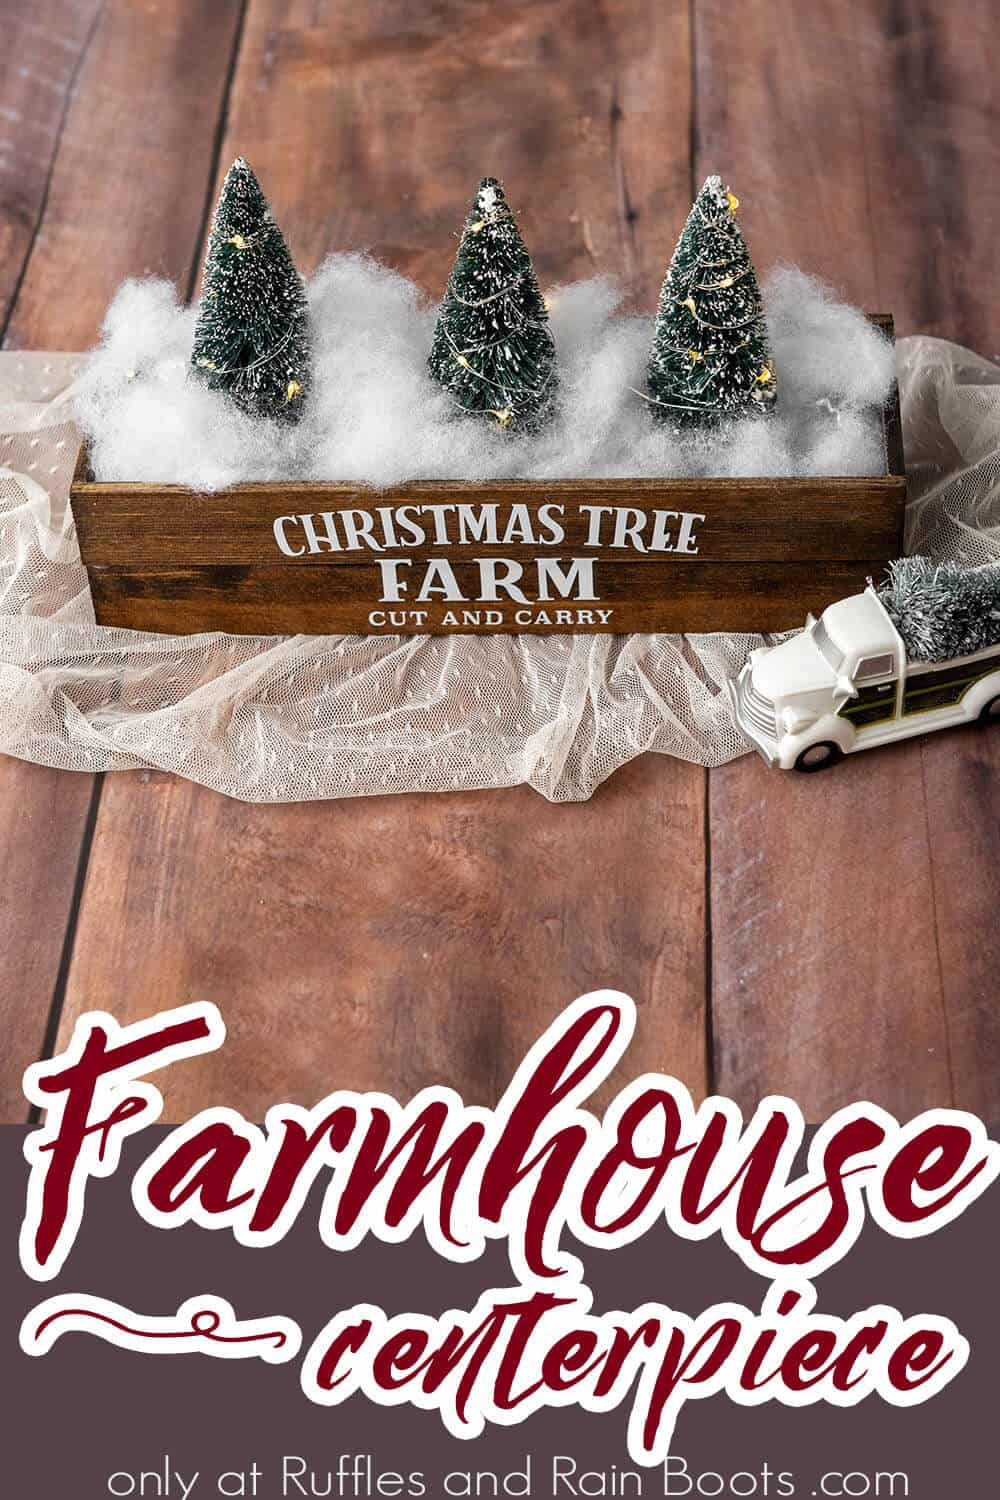 adorable holiday farmhouse centerpiece with text which reads farmhouse centerpiece